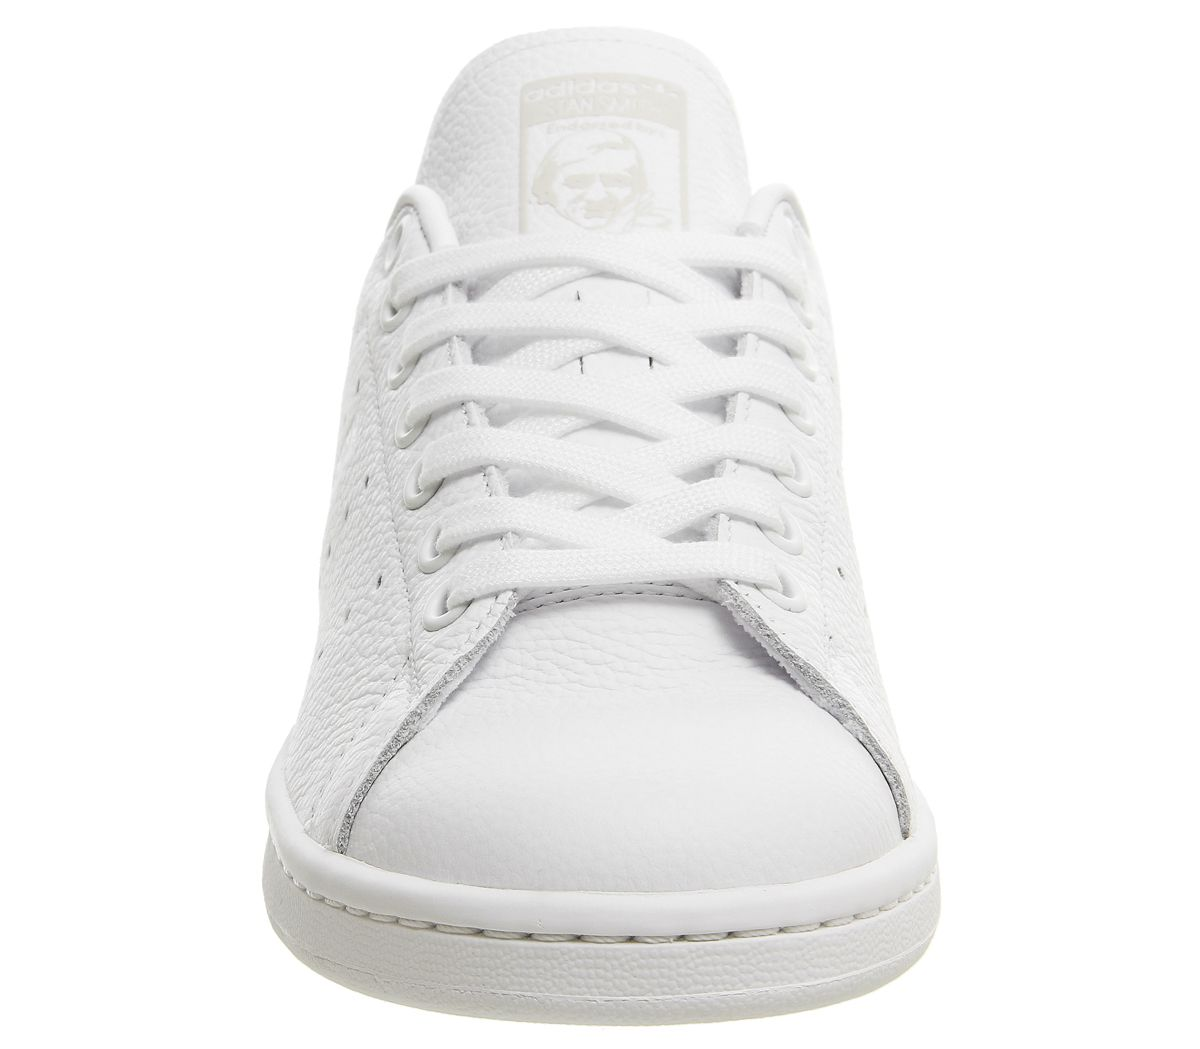 Short-Femme-Adidas-Stan-Smith-Baskets-White-Orchid-Tint-Baskets-Chaussures miniature 6